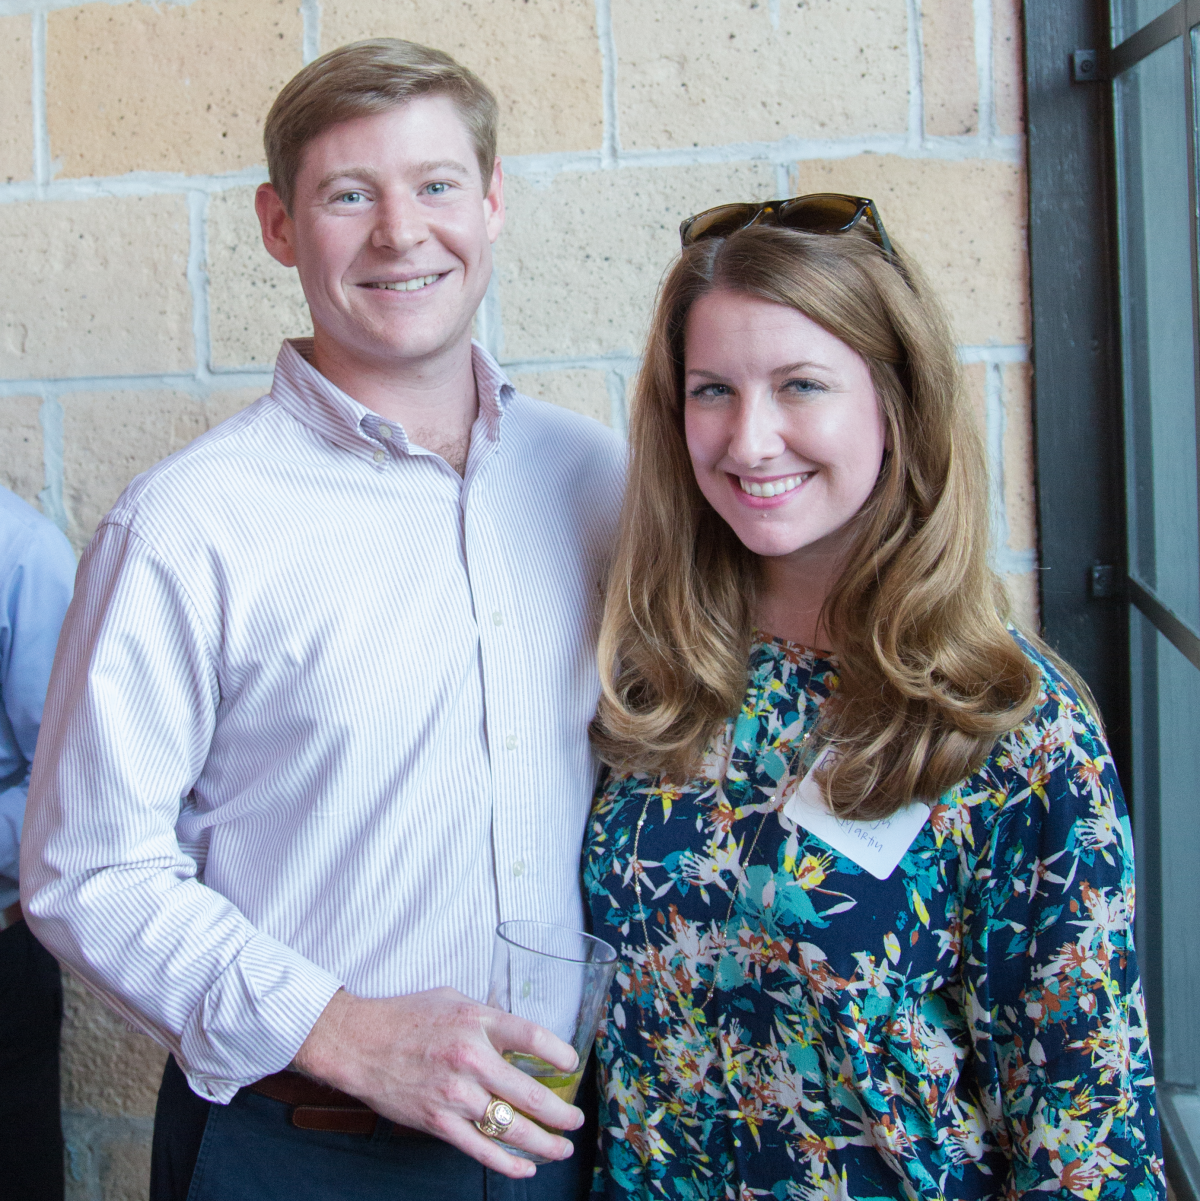 Houston, Casa de Esperanza YP Happy Hour, September 2015, John Vivrett and Jaclyn Martin